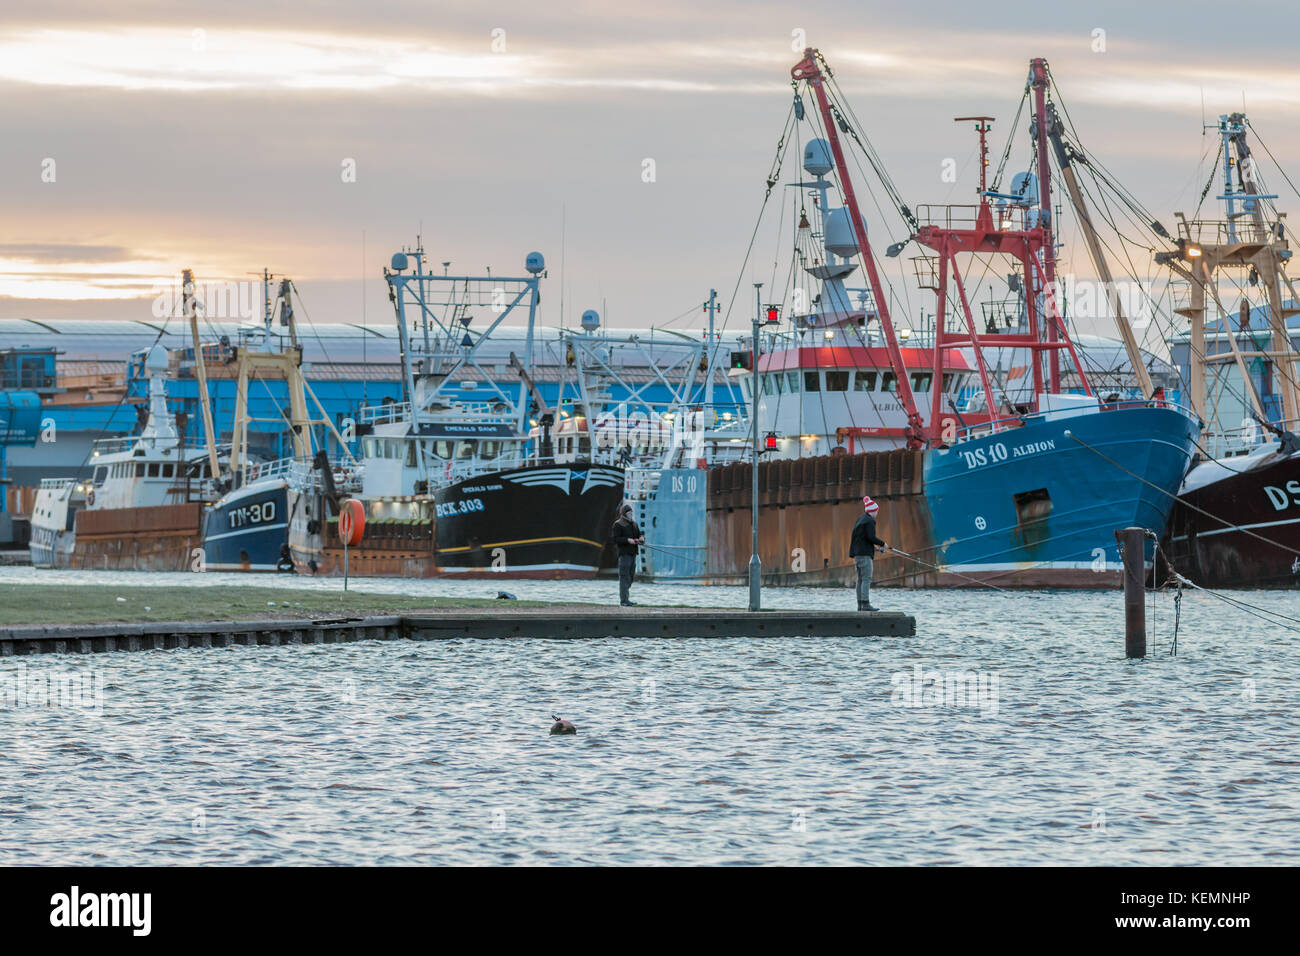 22nd October 2017; Shoreham Port, West Sussex, UK; two men fishing with rods within the port just after dawn. Fleet Stock Photo